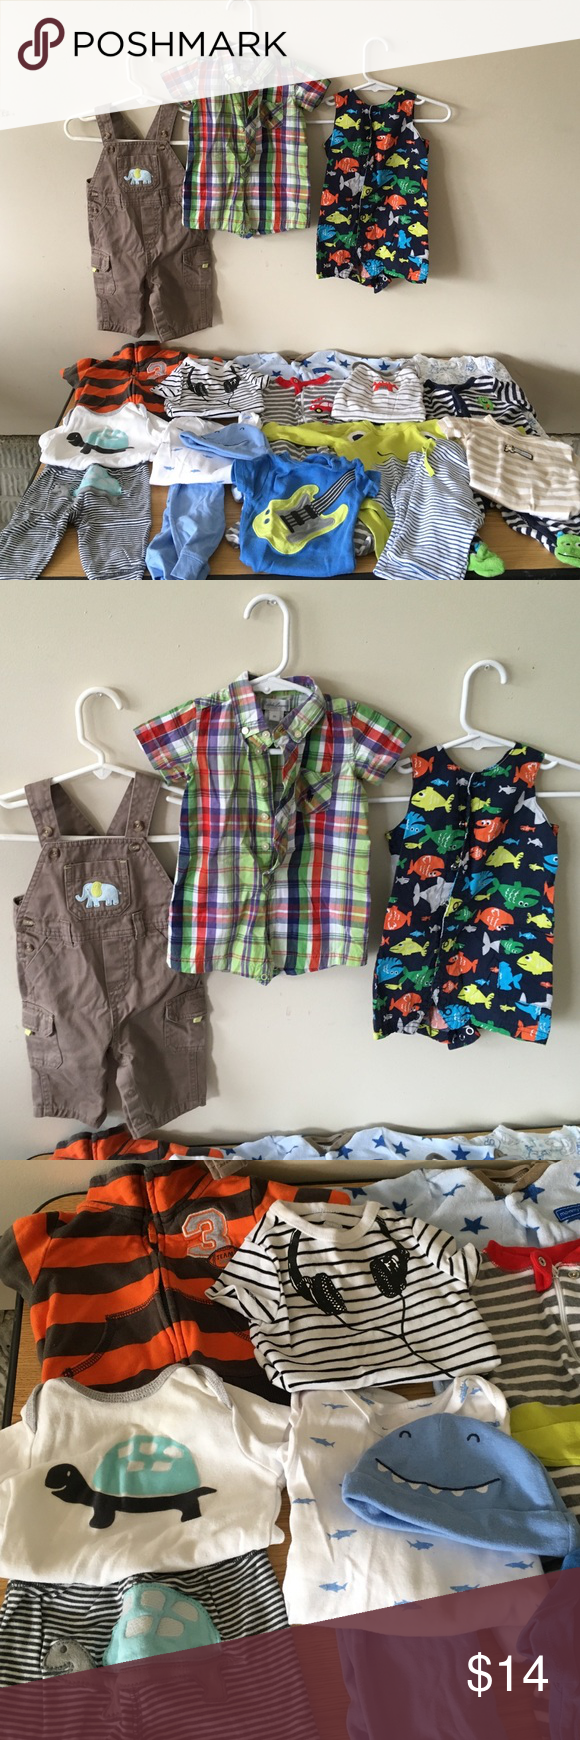 Big Lot Of Name Brand Baby Boy Clothes Mostly Carters Brand W